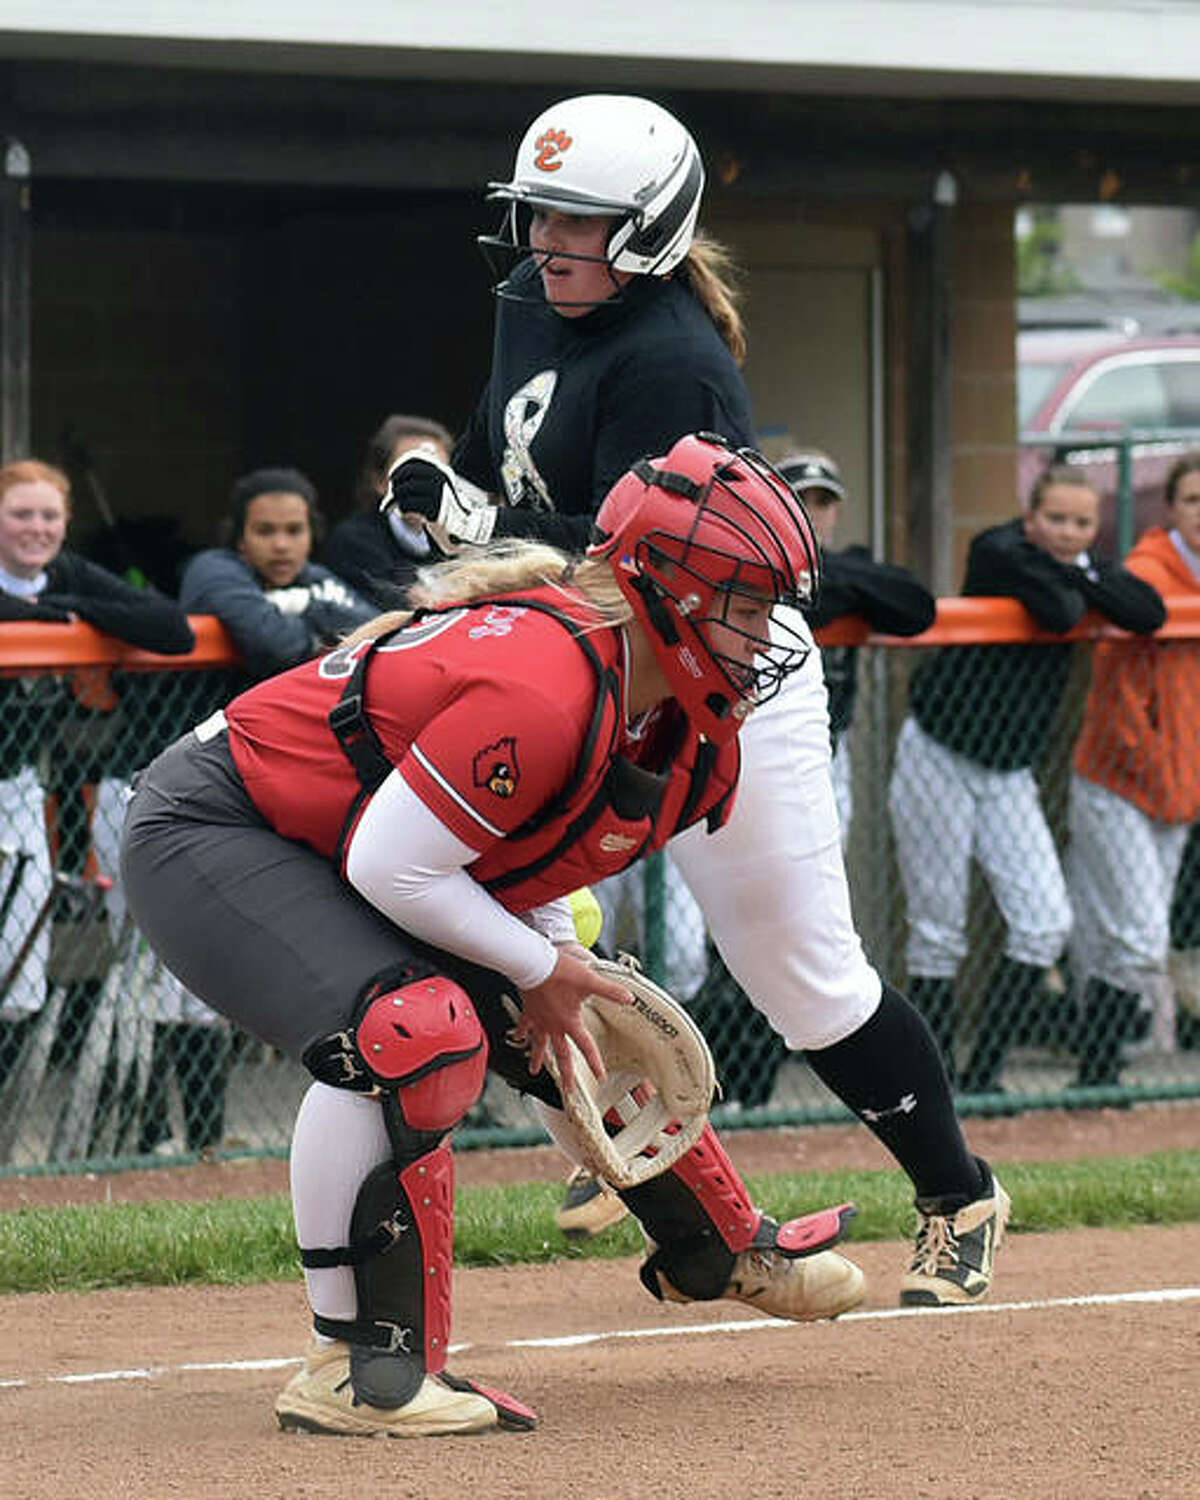 Edwardsville's Sam Sanders runs home as the throw eludes Alton catcher Lynna Fischer (left) in the second inning of Saturday's game inside the District 7 Sports Complex at Edwardsville.